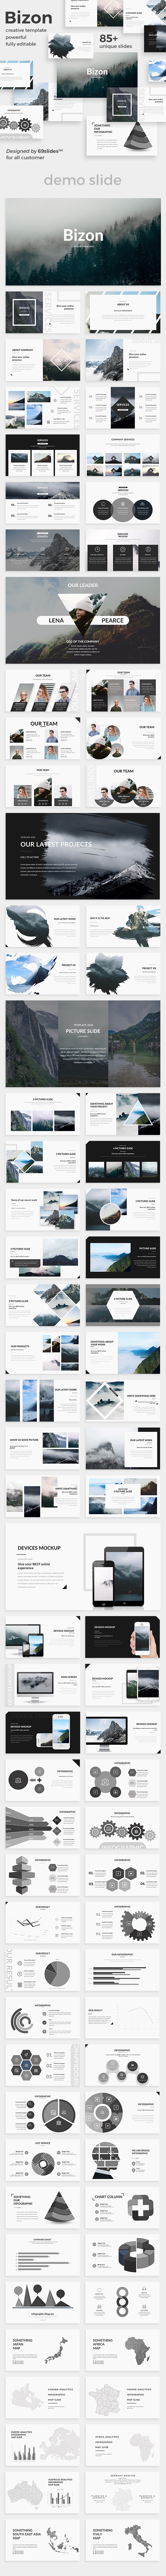 Bizon Creative Keynote Template - Creative Keynote Templates